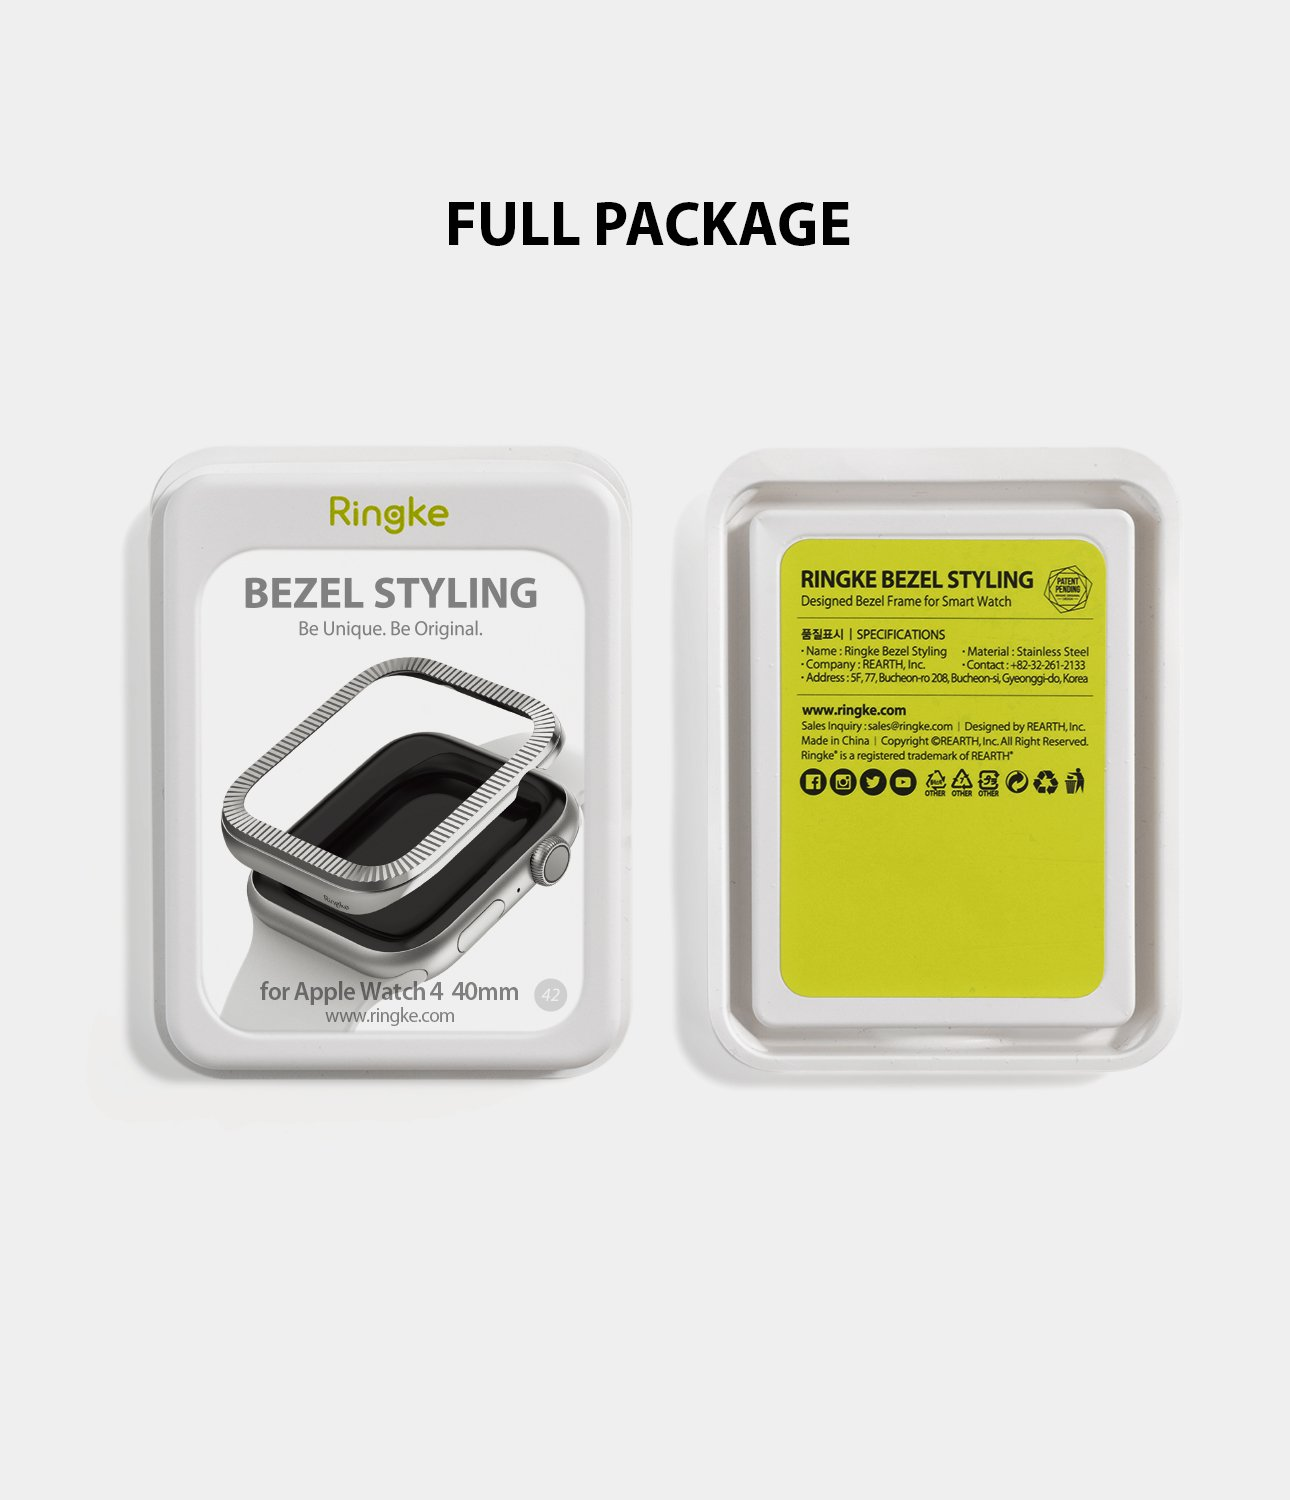 ringke bezel styling 40-42 stainless steel on apple watch series 6 / 5 / 4 / SE 40mm full package